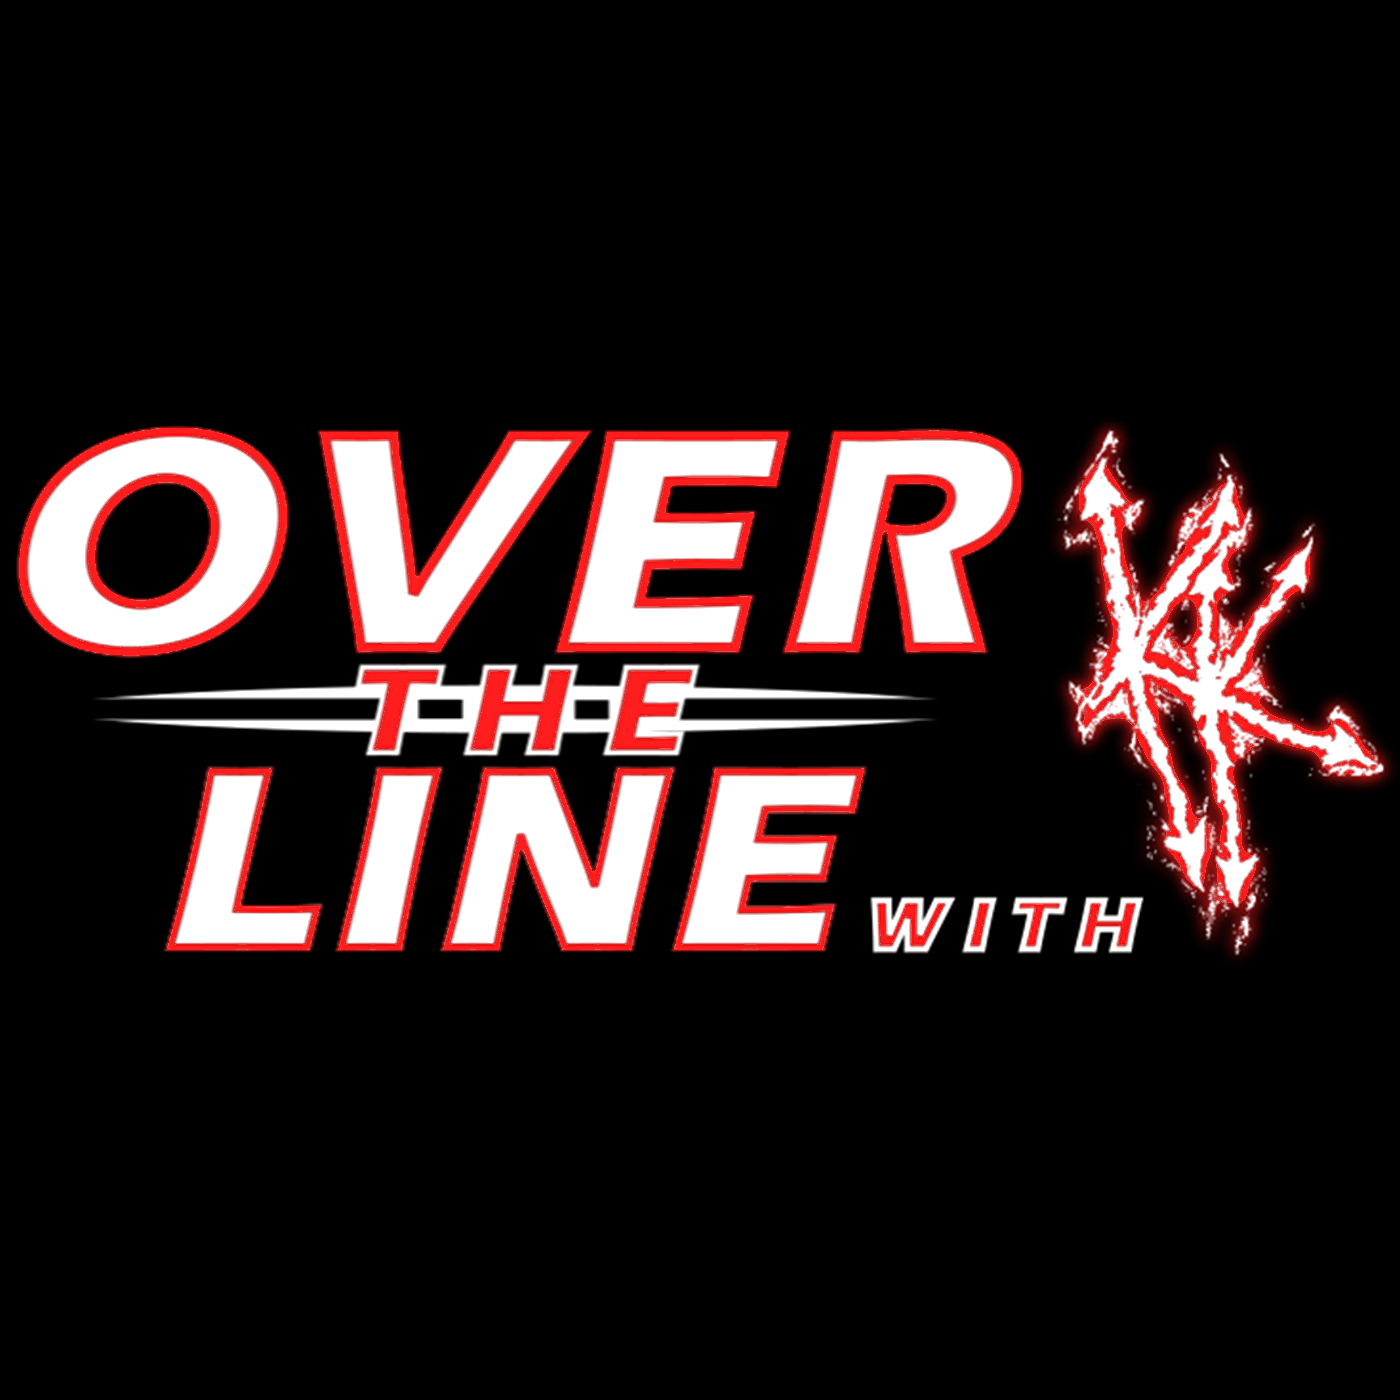 Over The Line with Kevyn Kross